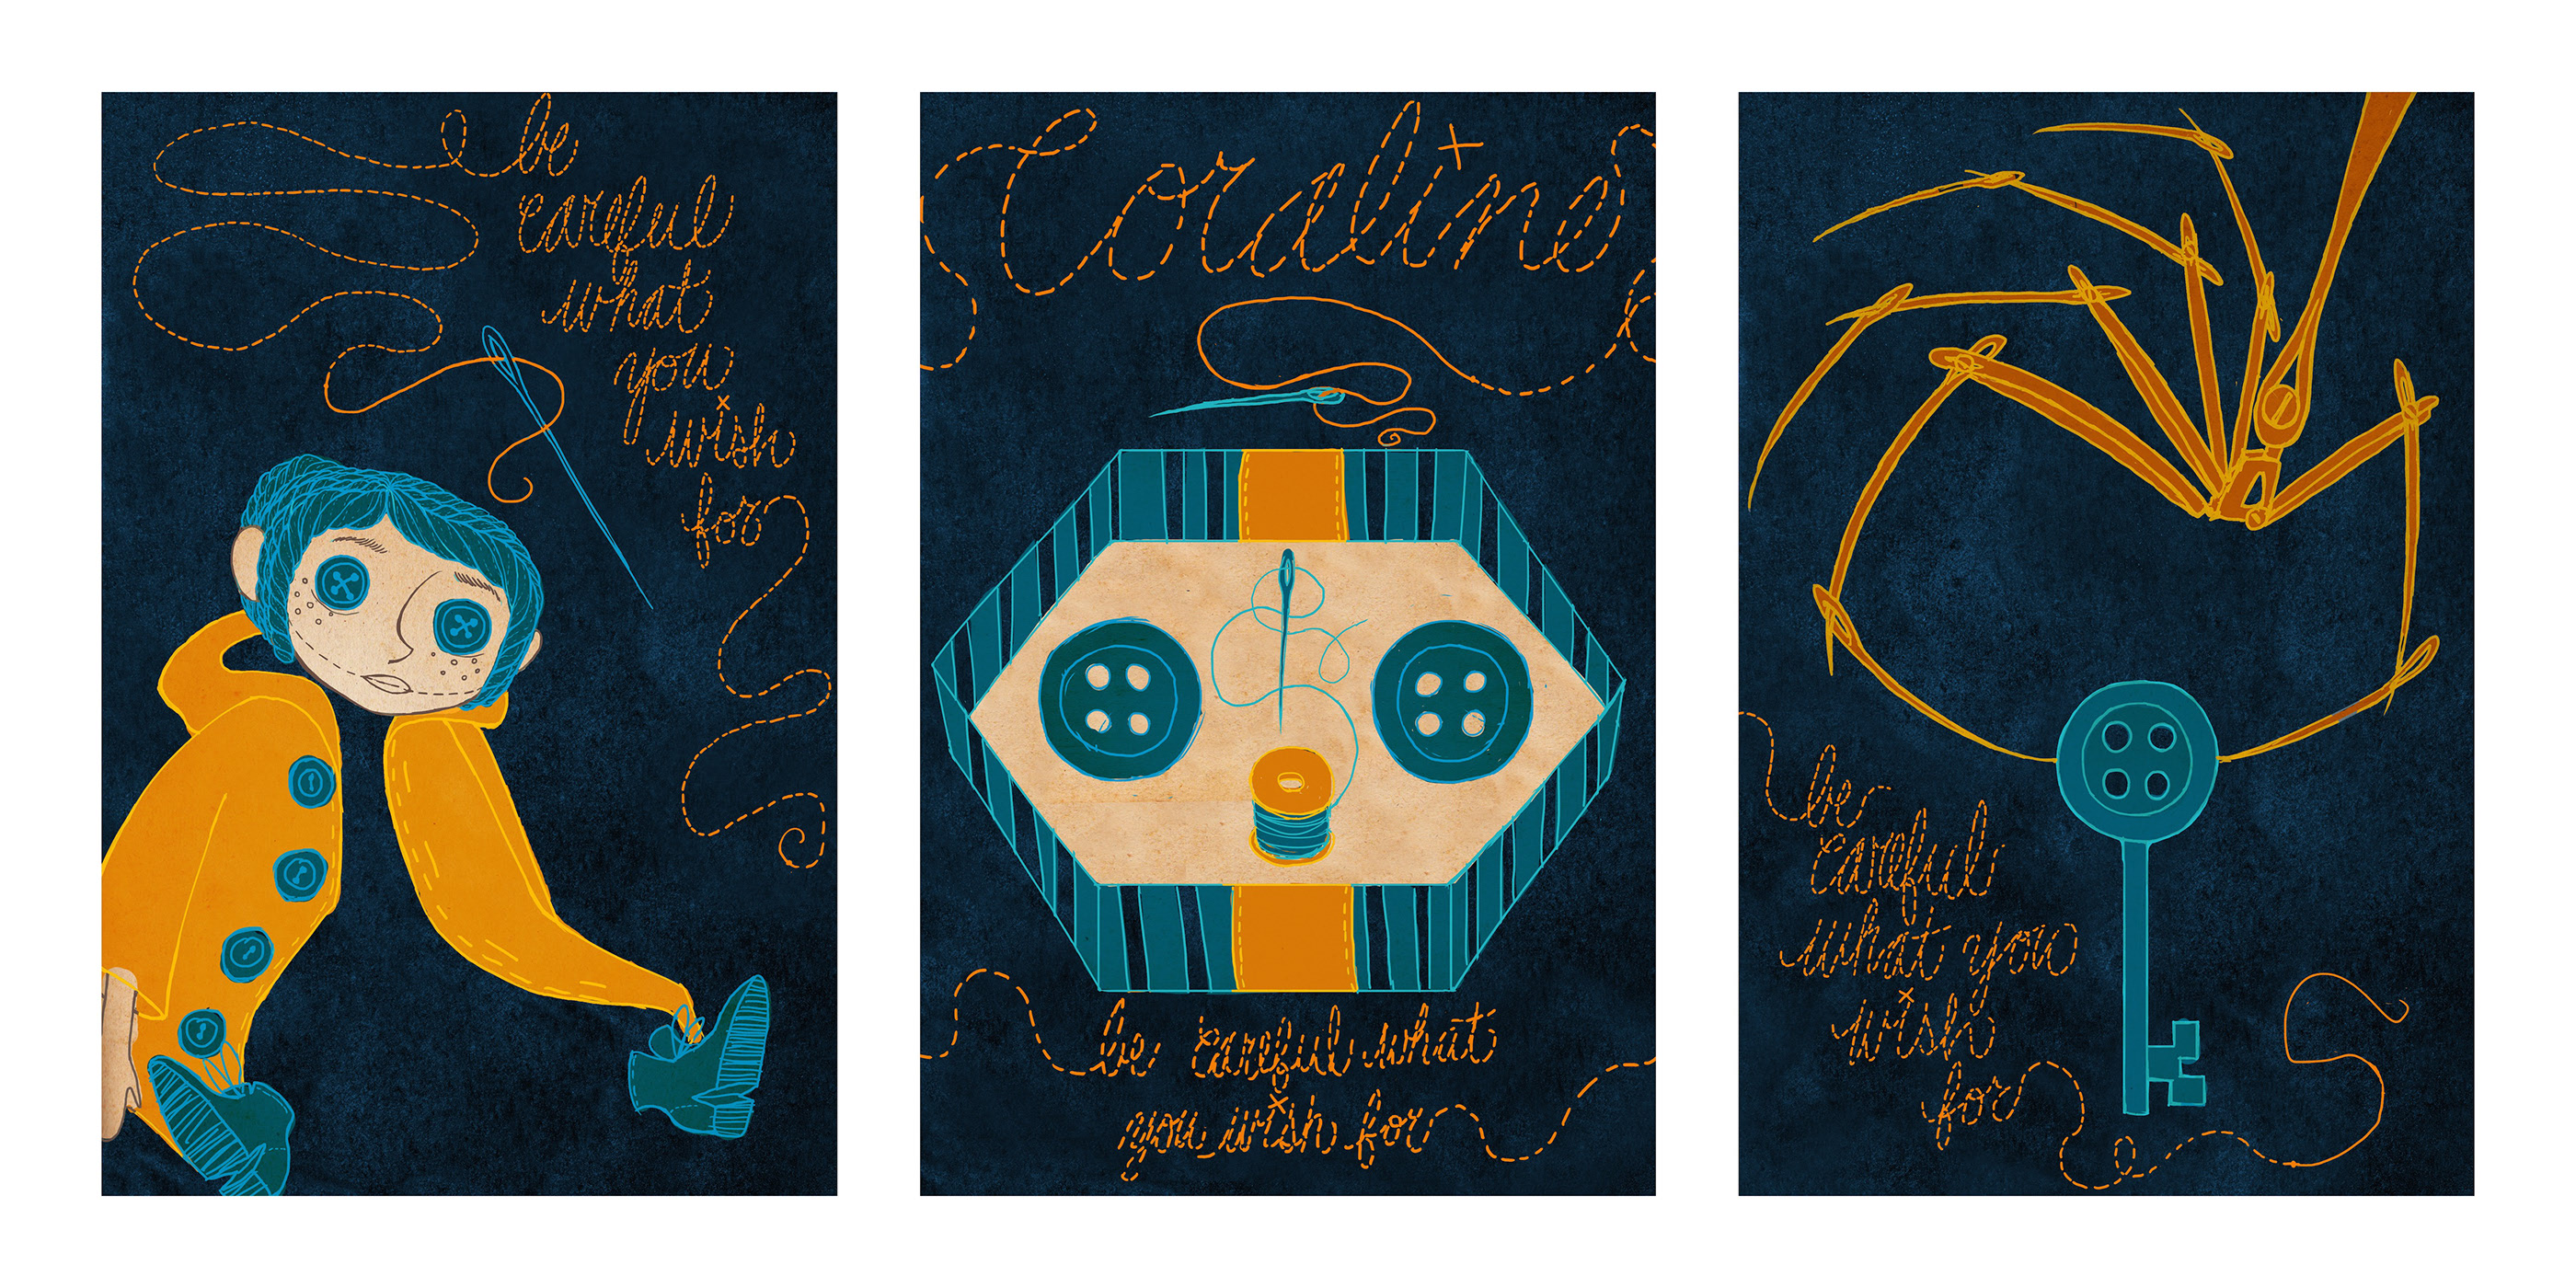 Coraline Movie Posters On Behance